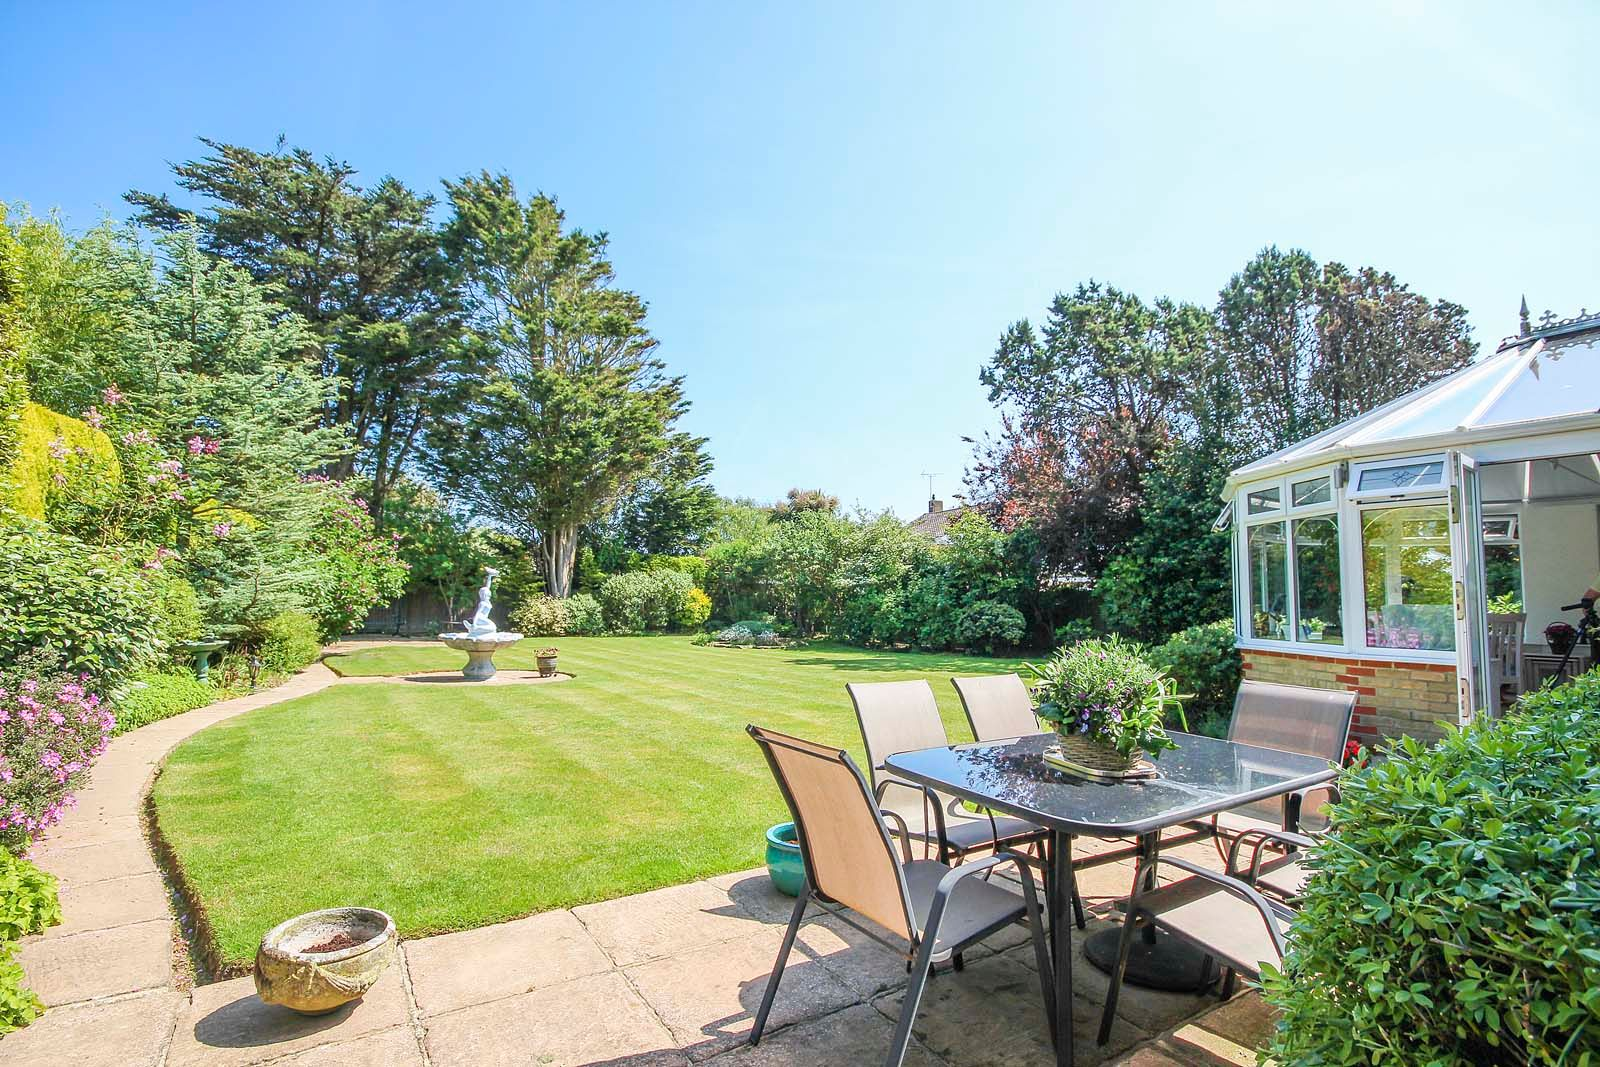 5 bed House for sale in The Willowhayne, East Preston - Rear garden (Property Image 8)